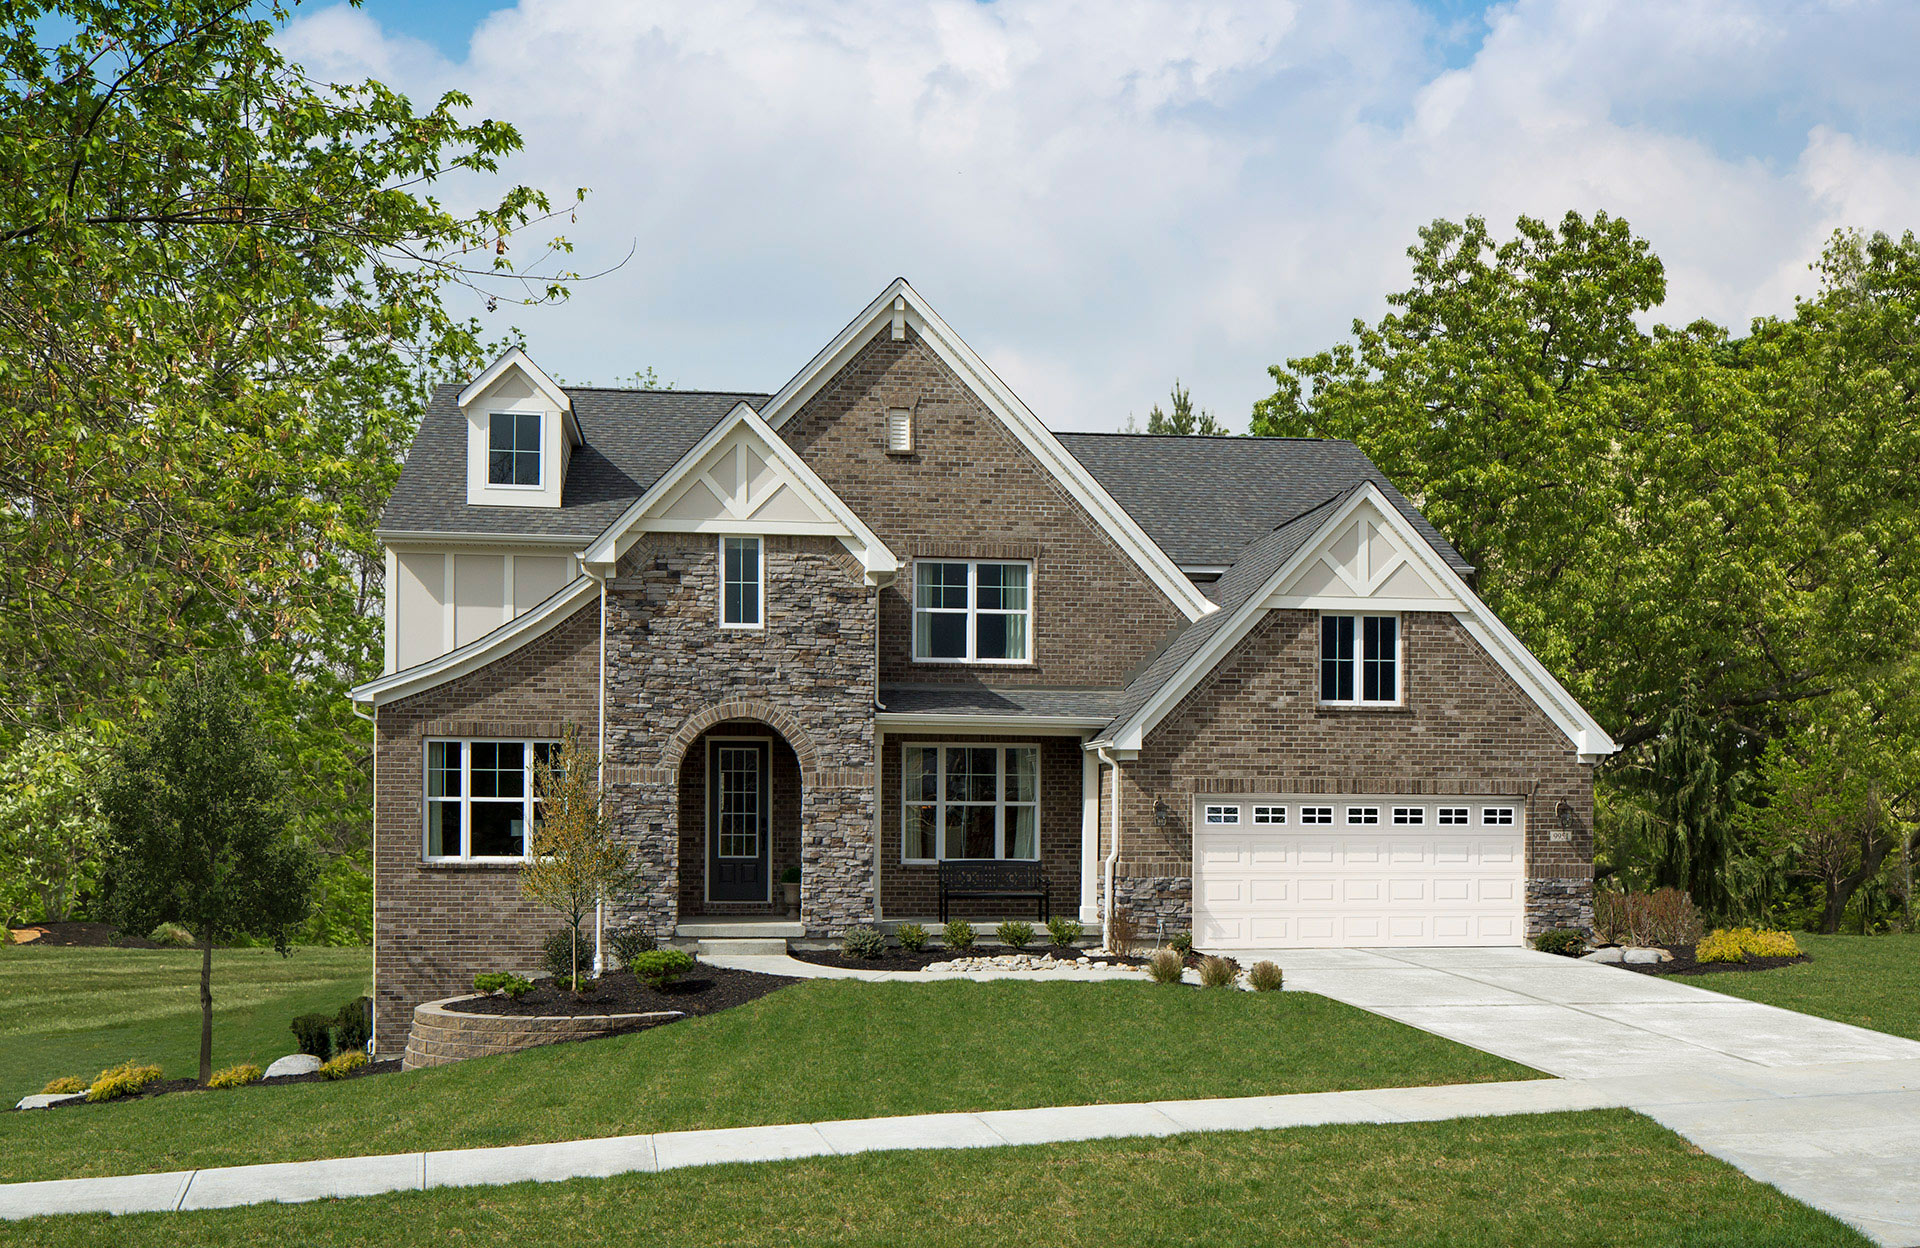 ash lawn at cross creek in cincinnati - Energy Independent Home Plans